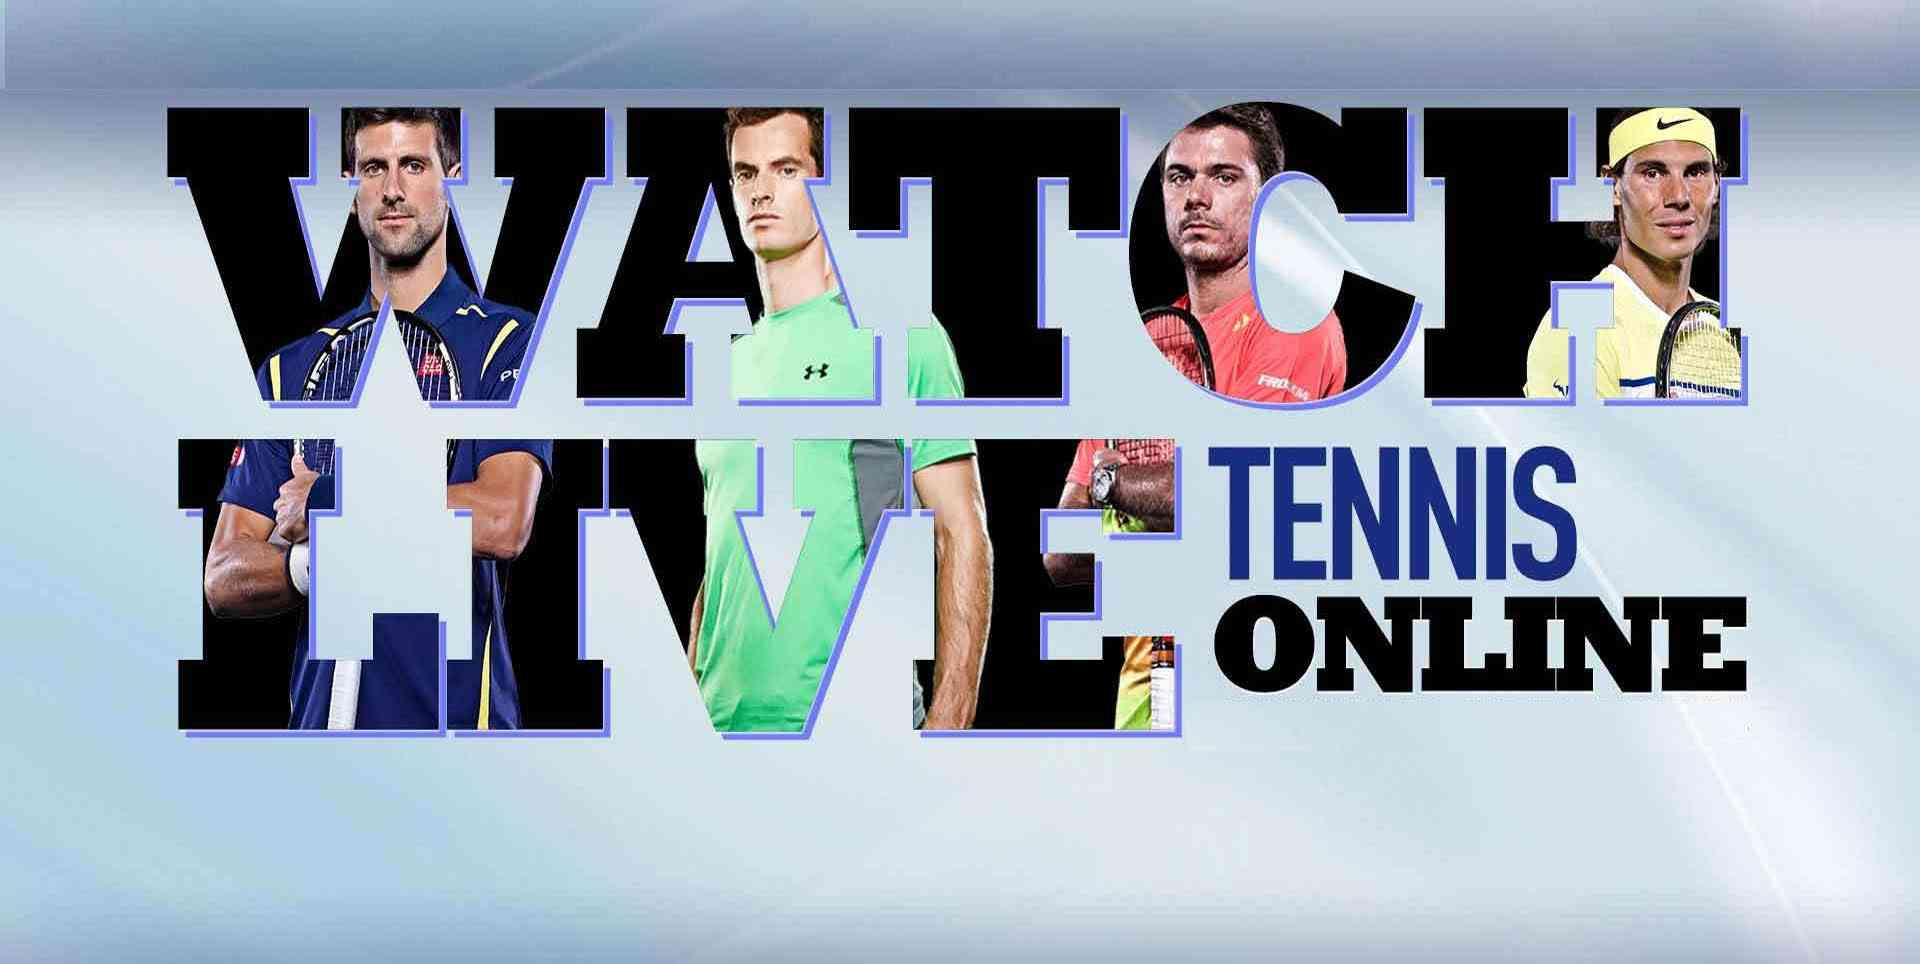 Watch N. Almagro vs J. Monaco Quarterfinals Online 2013